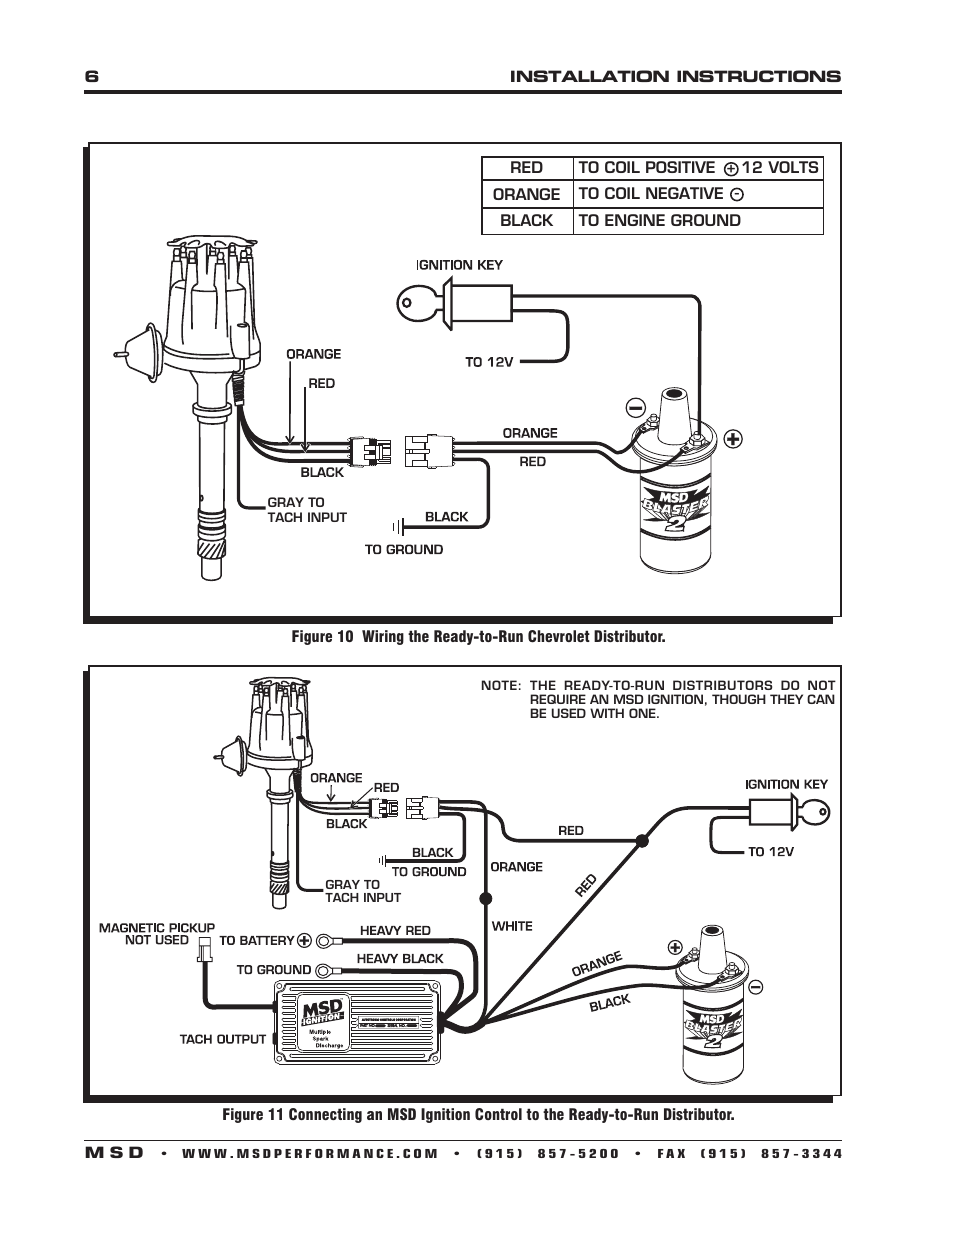 hight resolution of msd 8360 chevy v8 w internal module distributor installation user manual page 6 8 also for 8393 chevy 348 409 ready to run distributor installation